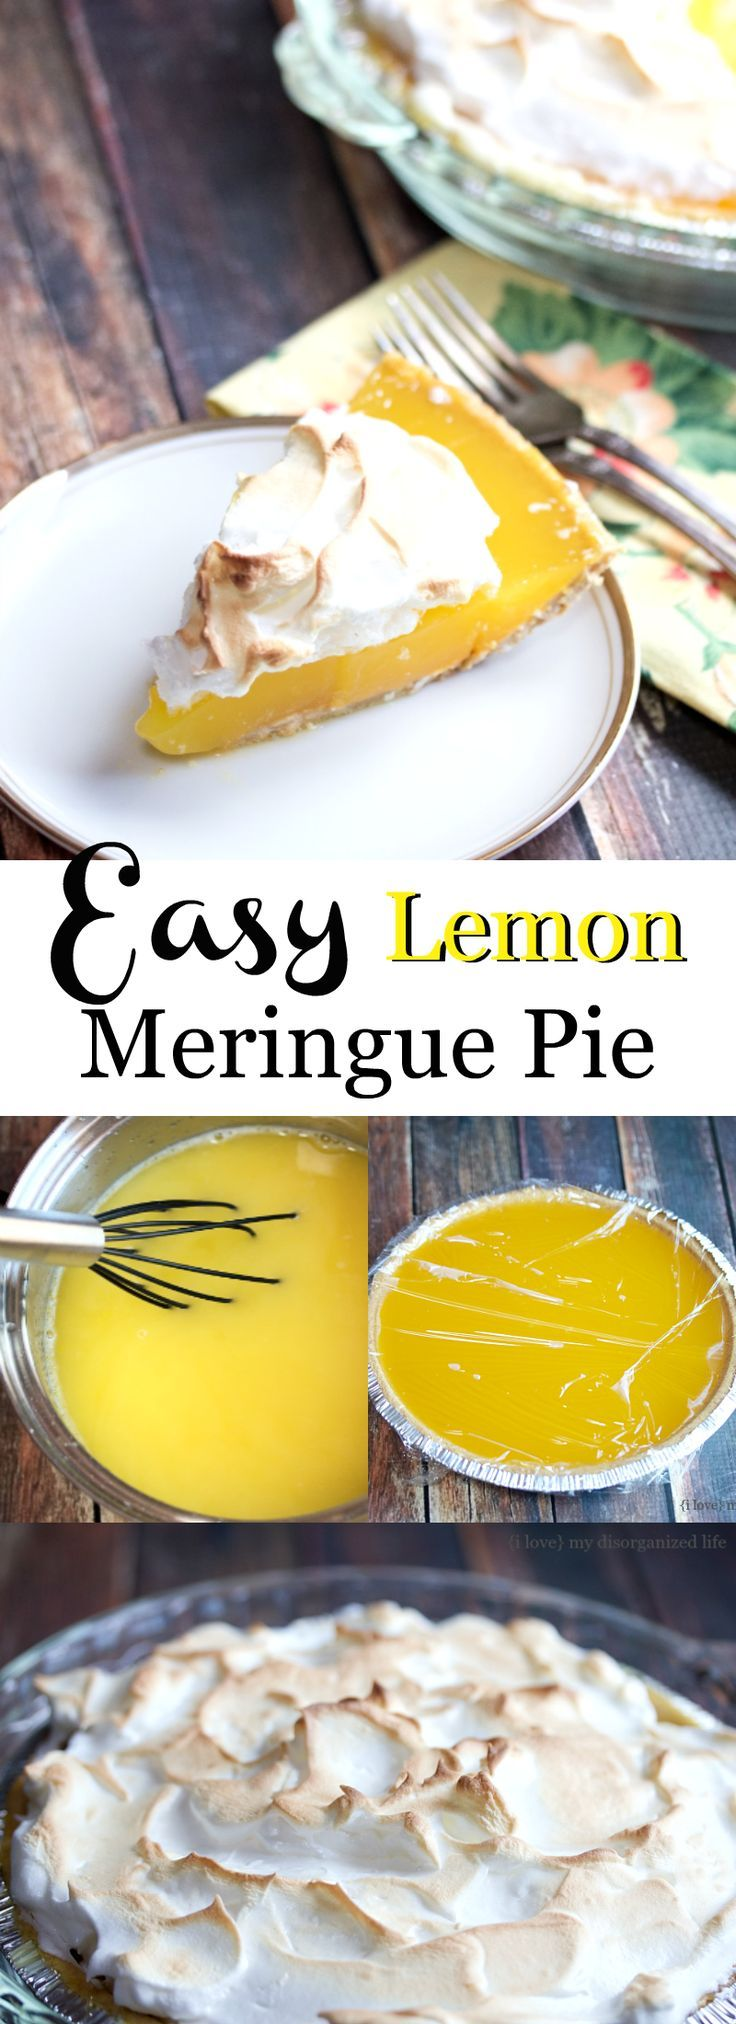 This easy lemon meringue pie recipe is super refreshing and loaded with rich lemon flavor on a slightly sweet graham cracker crust!